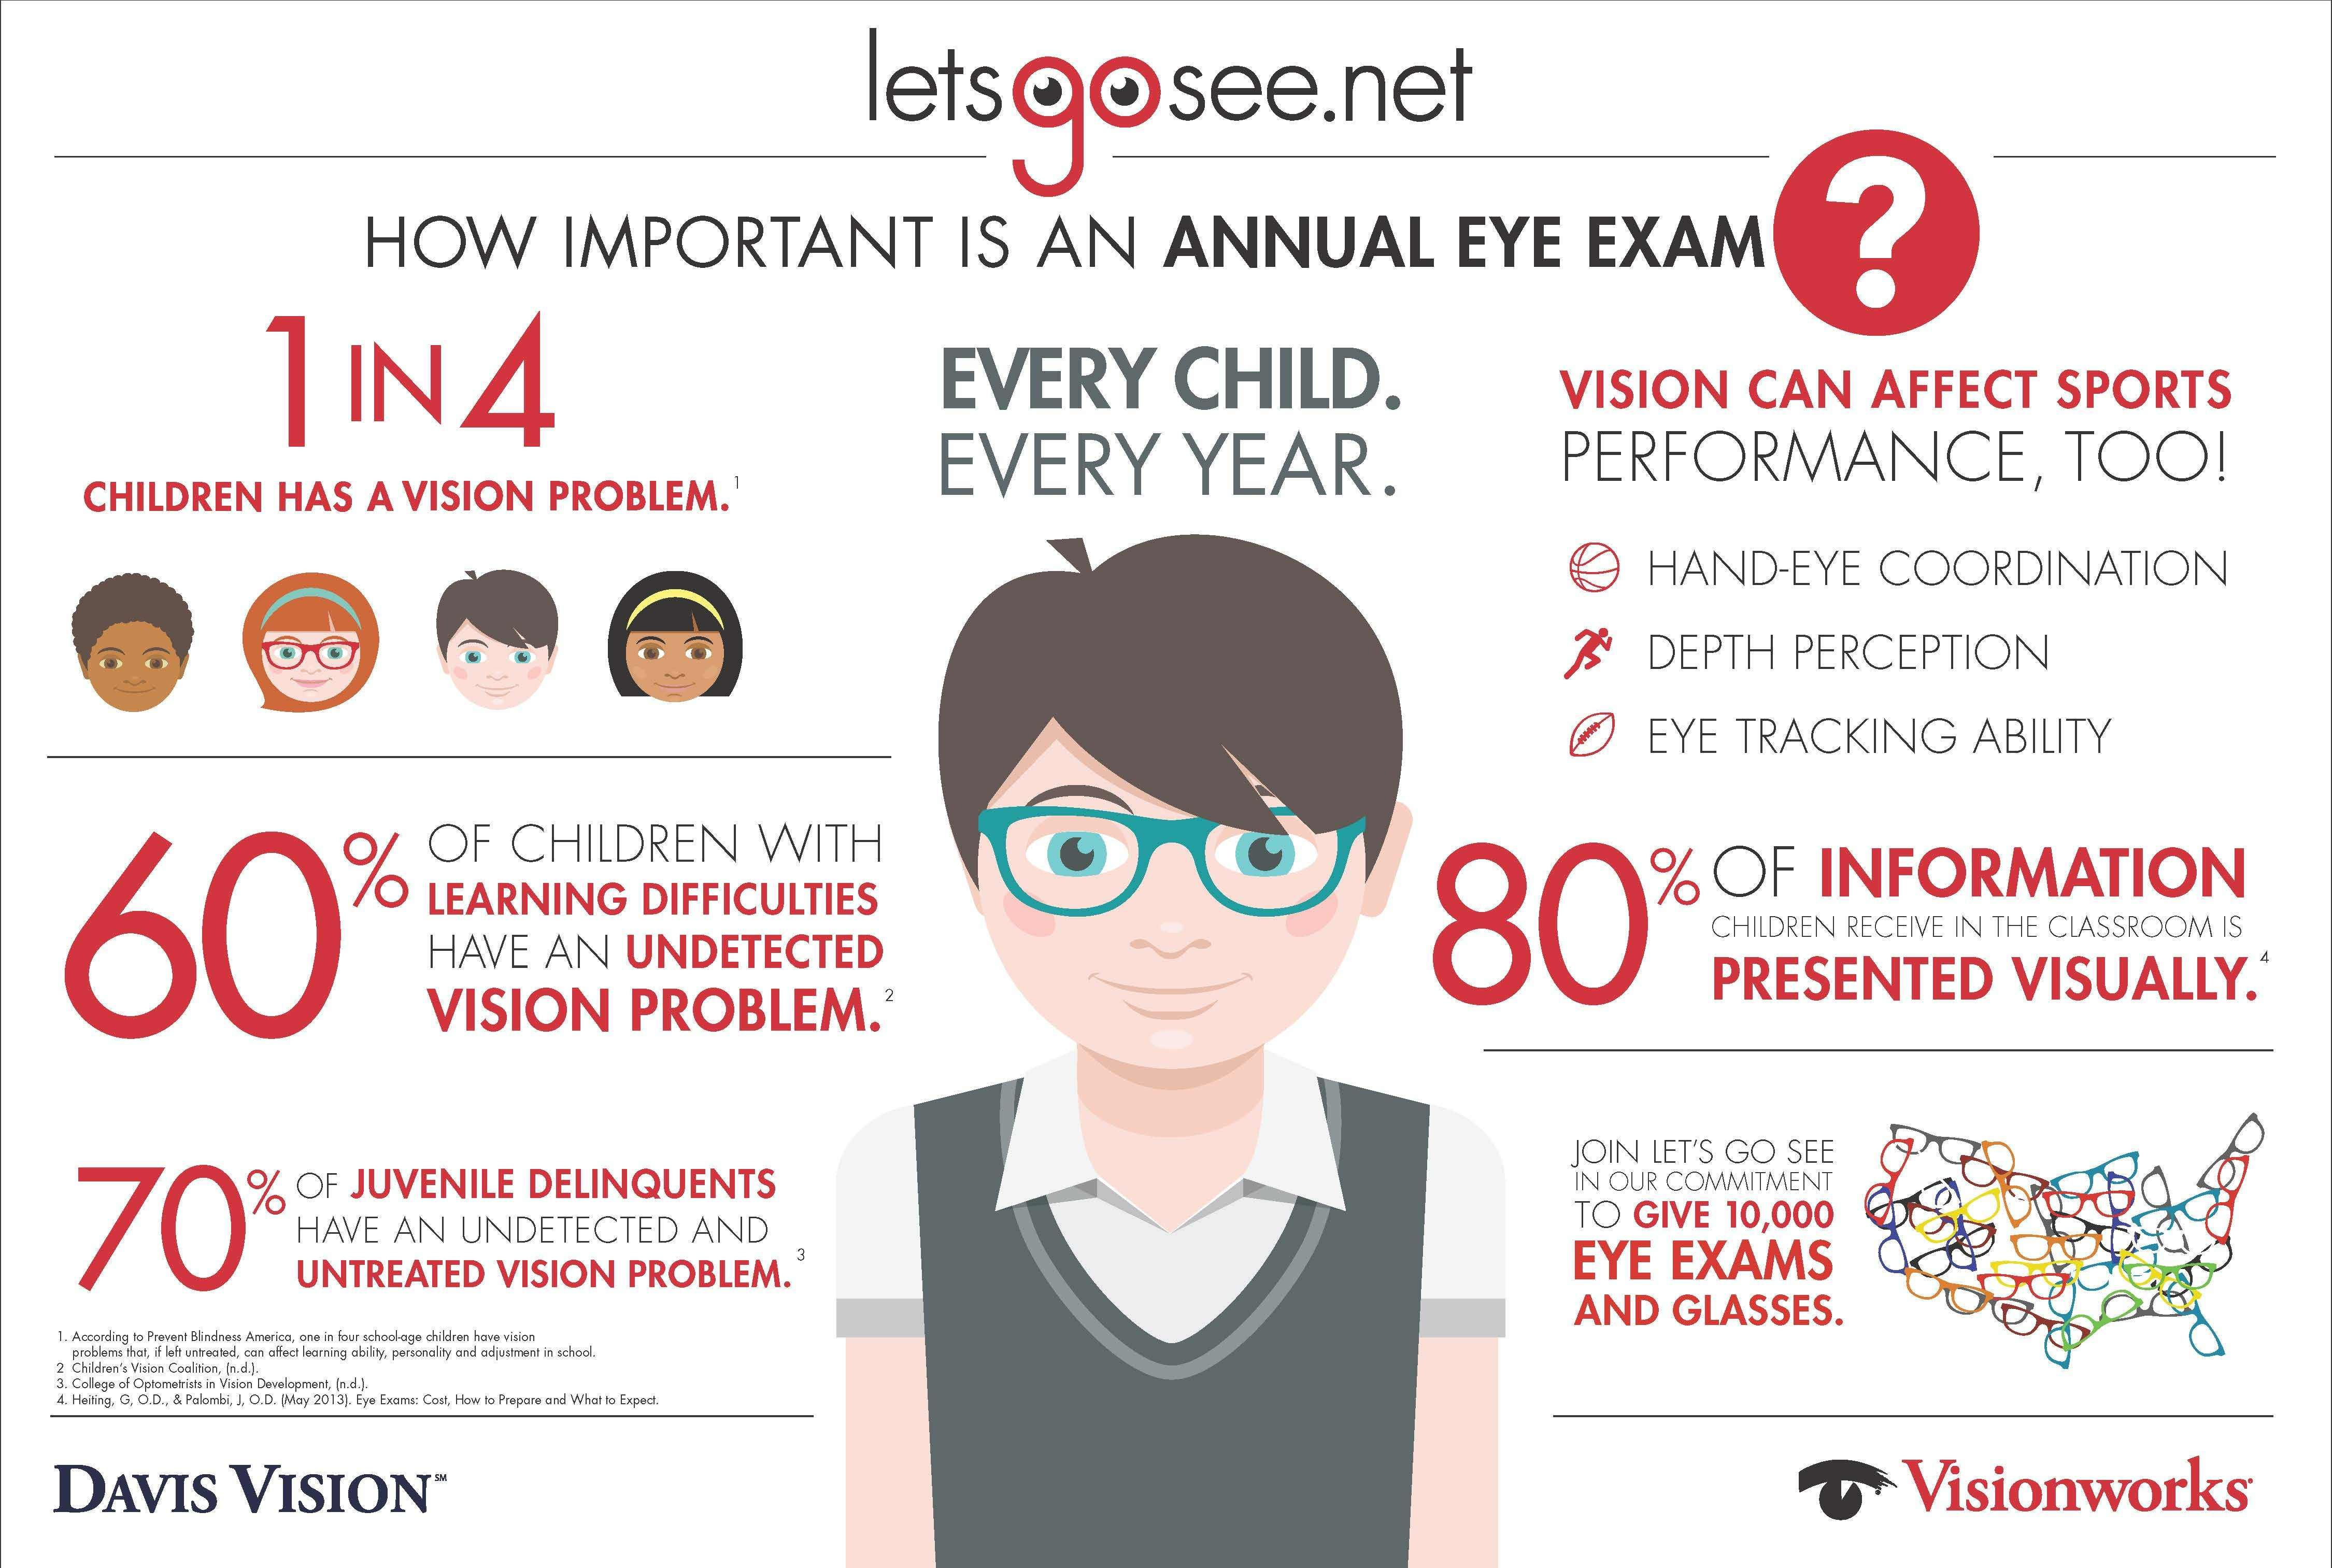 Childrens Health: Vision Problems